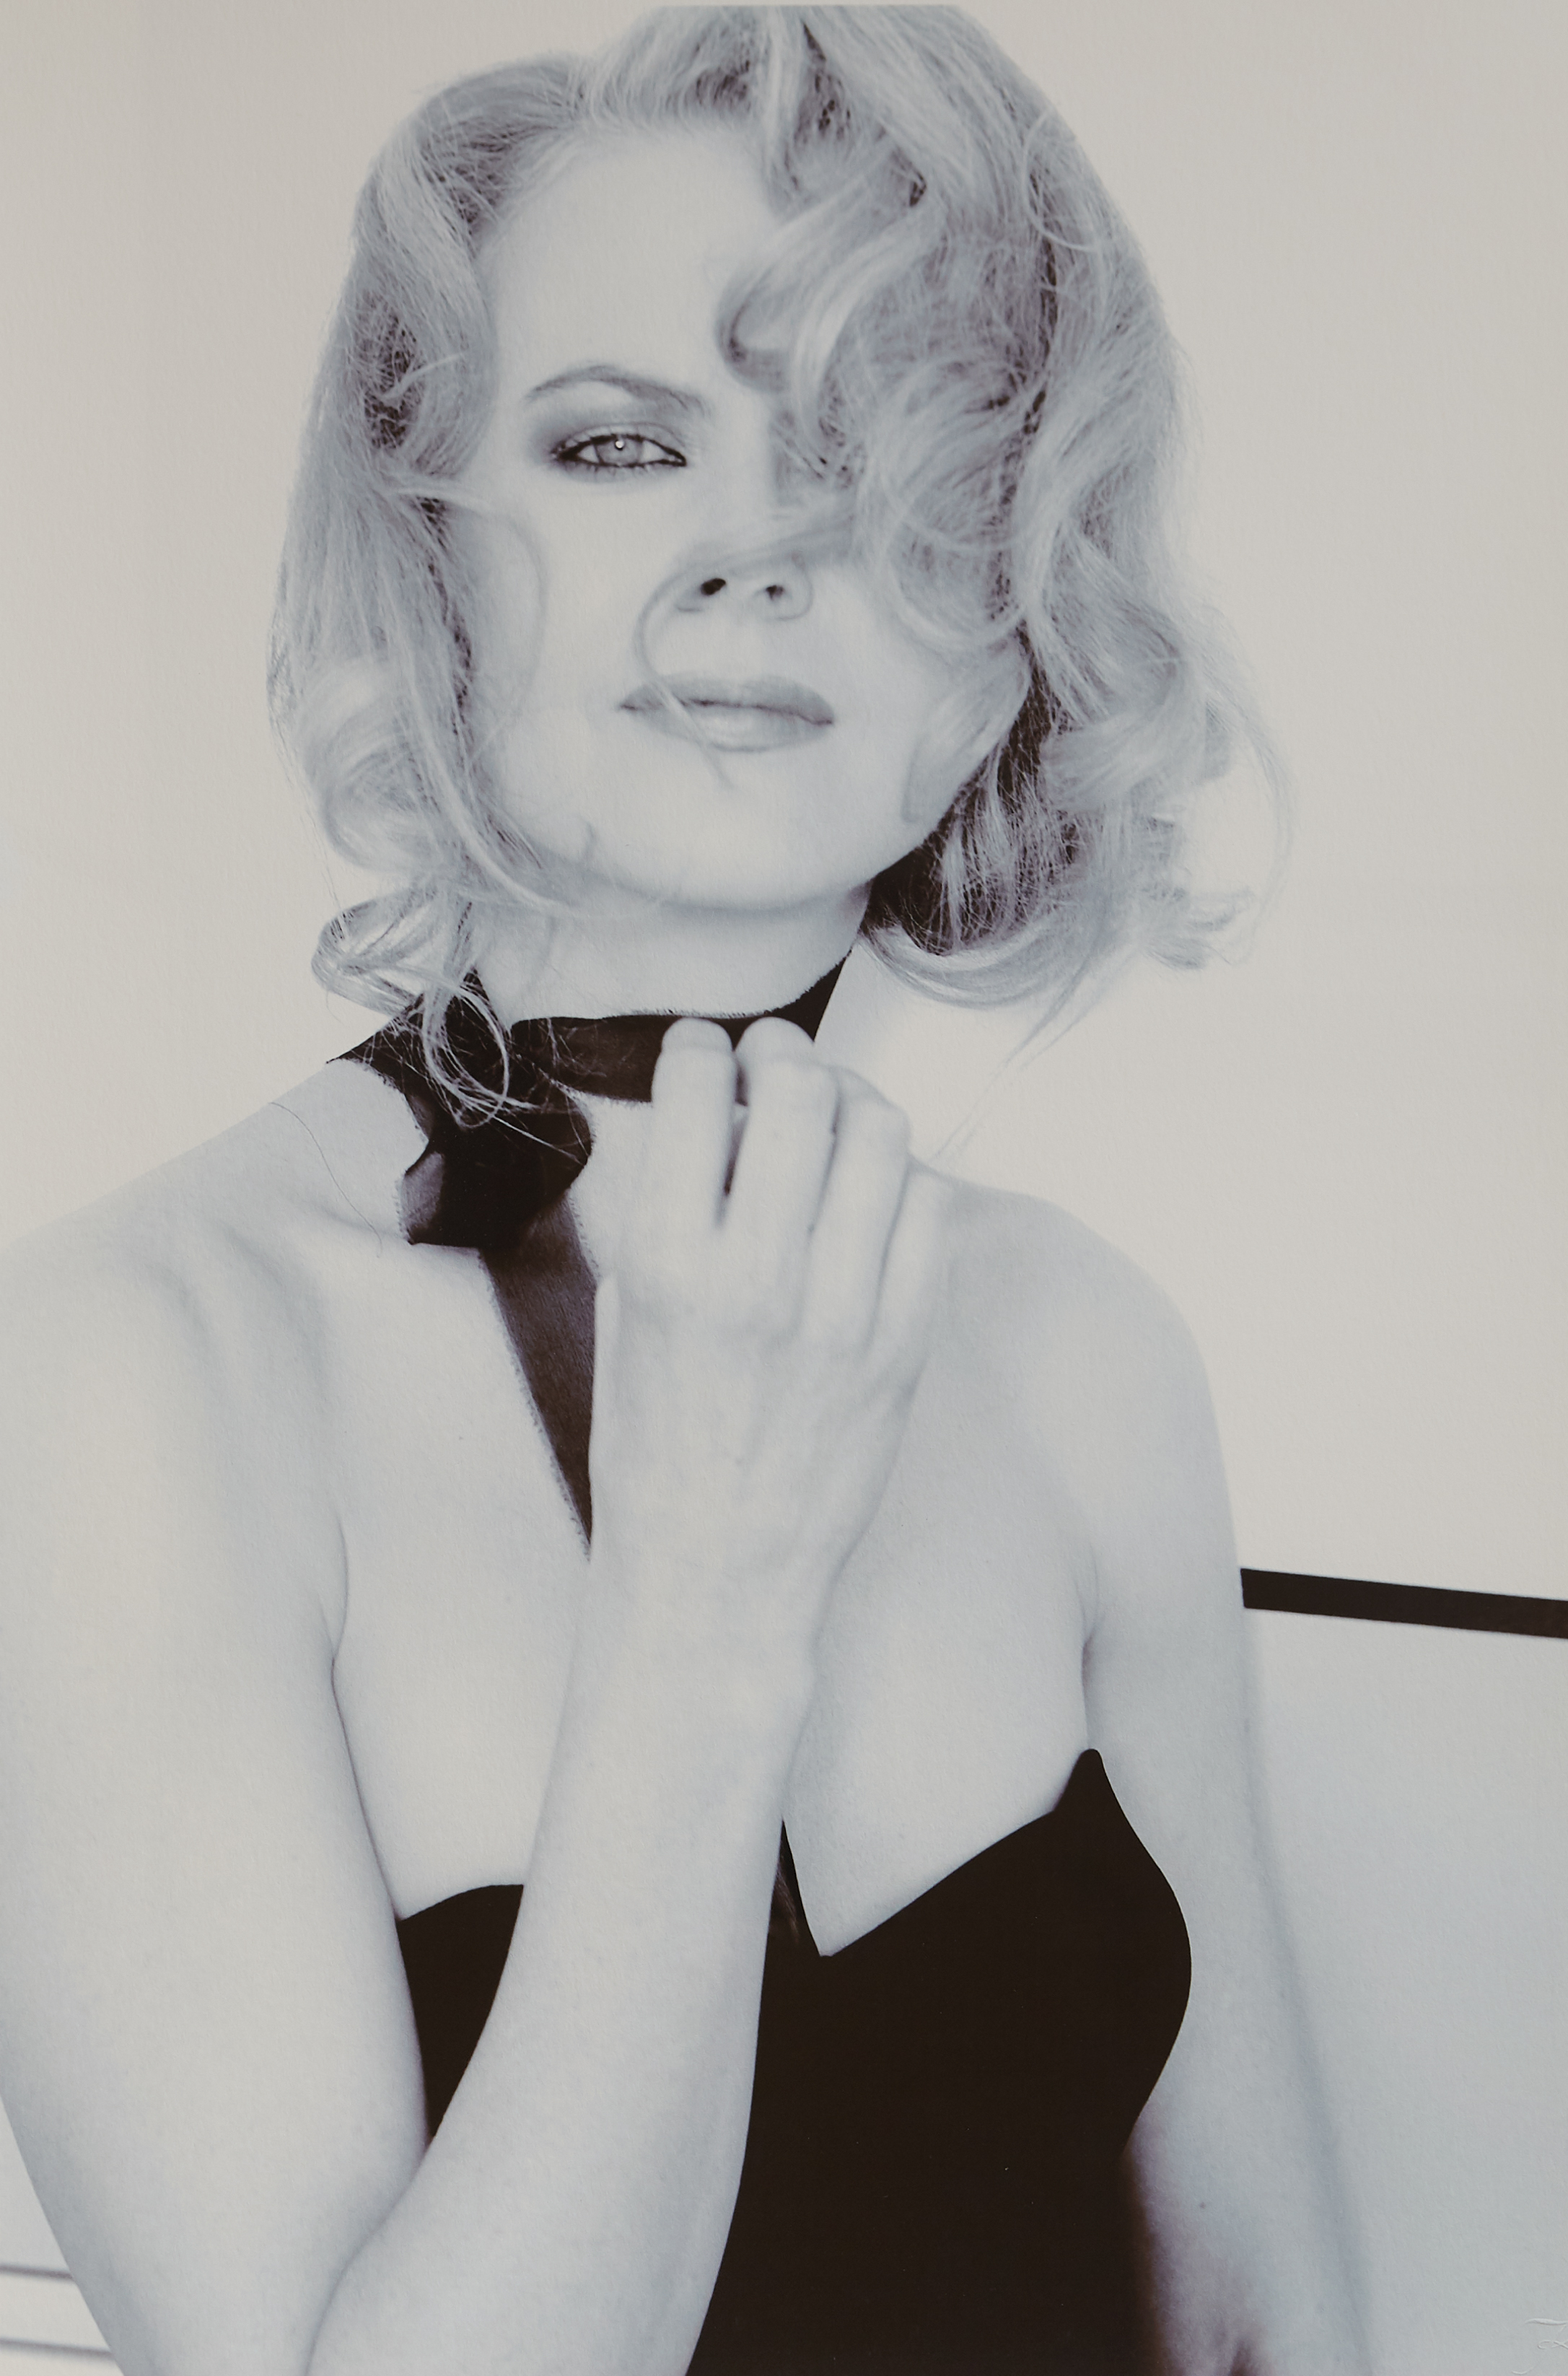 Karl Lagerfeld.  Nicole Kidman (Hollywood Stars),  2002. B/W photography printed on Lyson paper. 23 3/8 x 16 1/2 inches. 59.5 x 42cm.